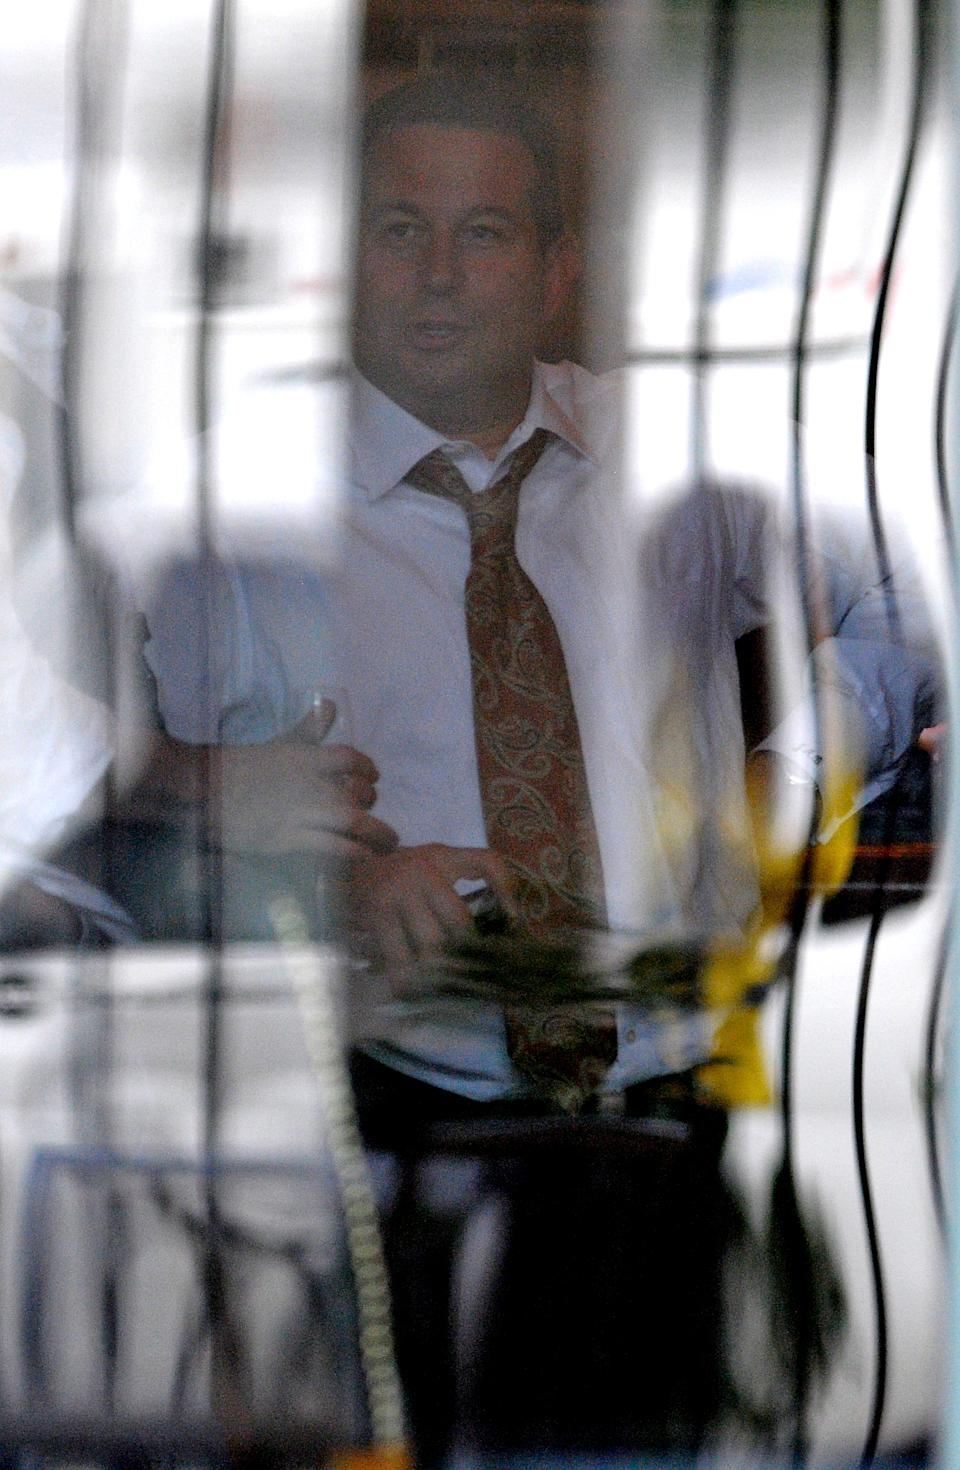 Casey Anthony lead defense attorney Jose Baez, center, is seen through a window participating in a celebration with other members of his defense team and staff at a restaurant across the street from the Orange County Courthouse after the not-guilty verdict was announced in Orlando, Fla., Tuesday, July 5, 2011. (AP Photo/Phelan M. Ebenhack)